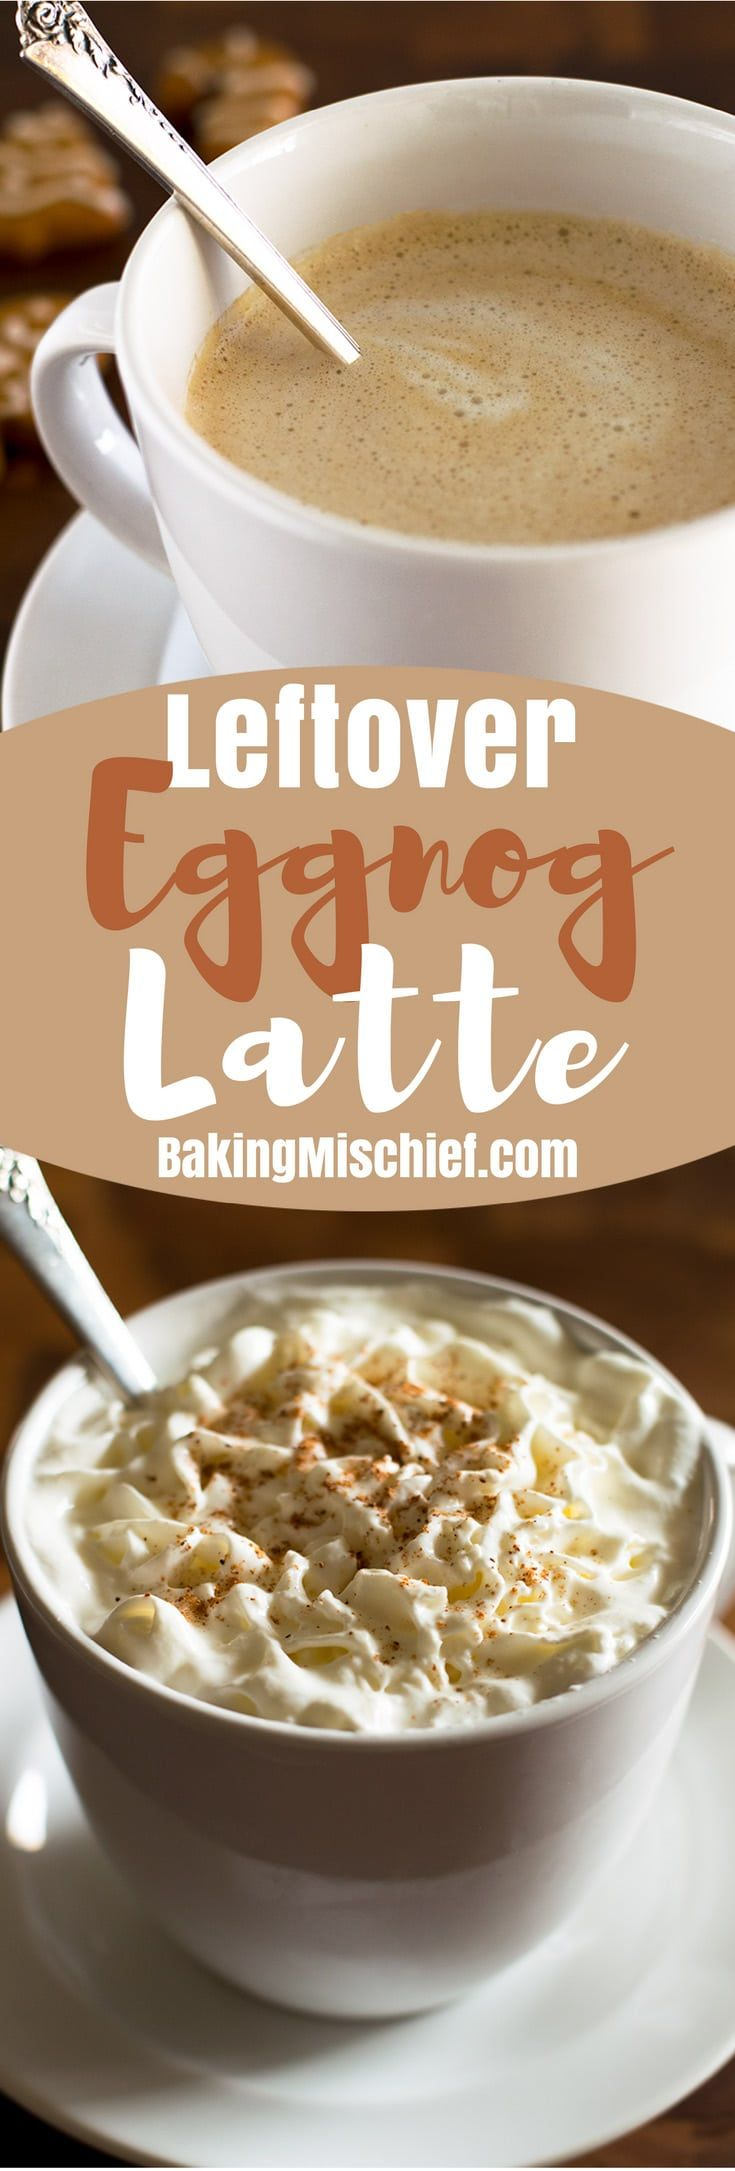 An Eggnog Latte is the perfect Starbucks copycat for using up leftover eggnog! From BakingMischief.com